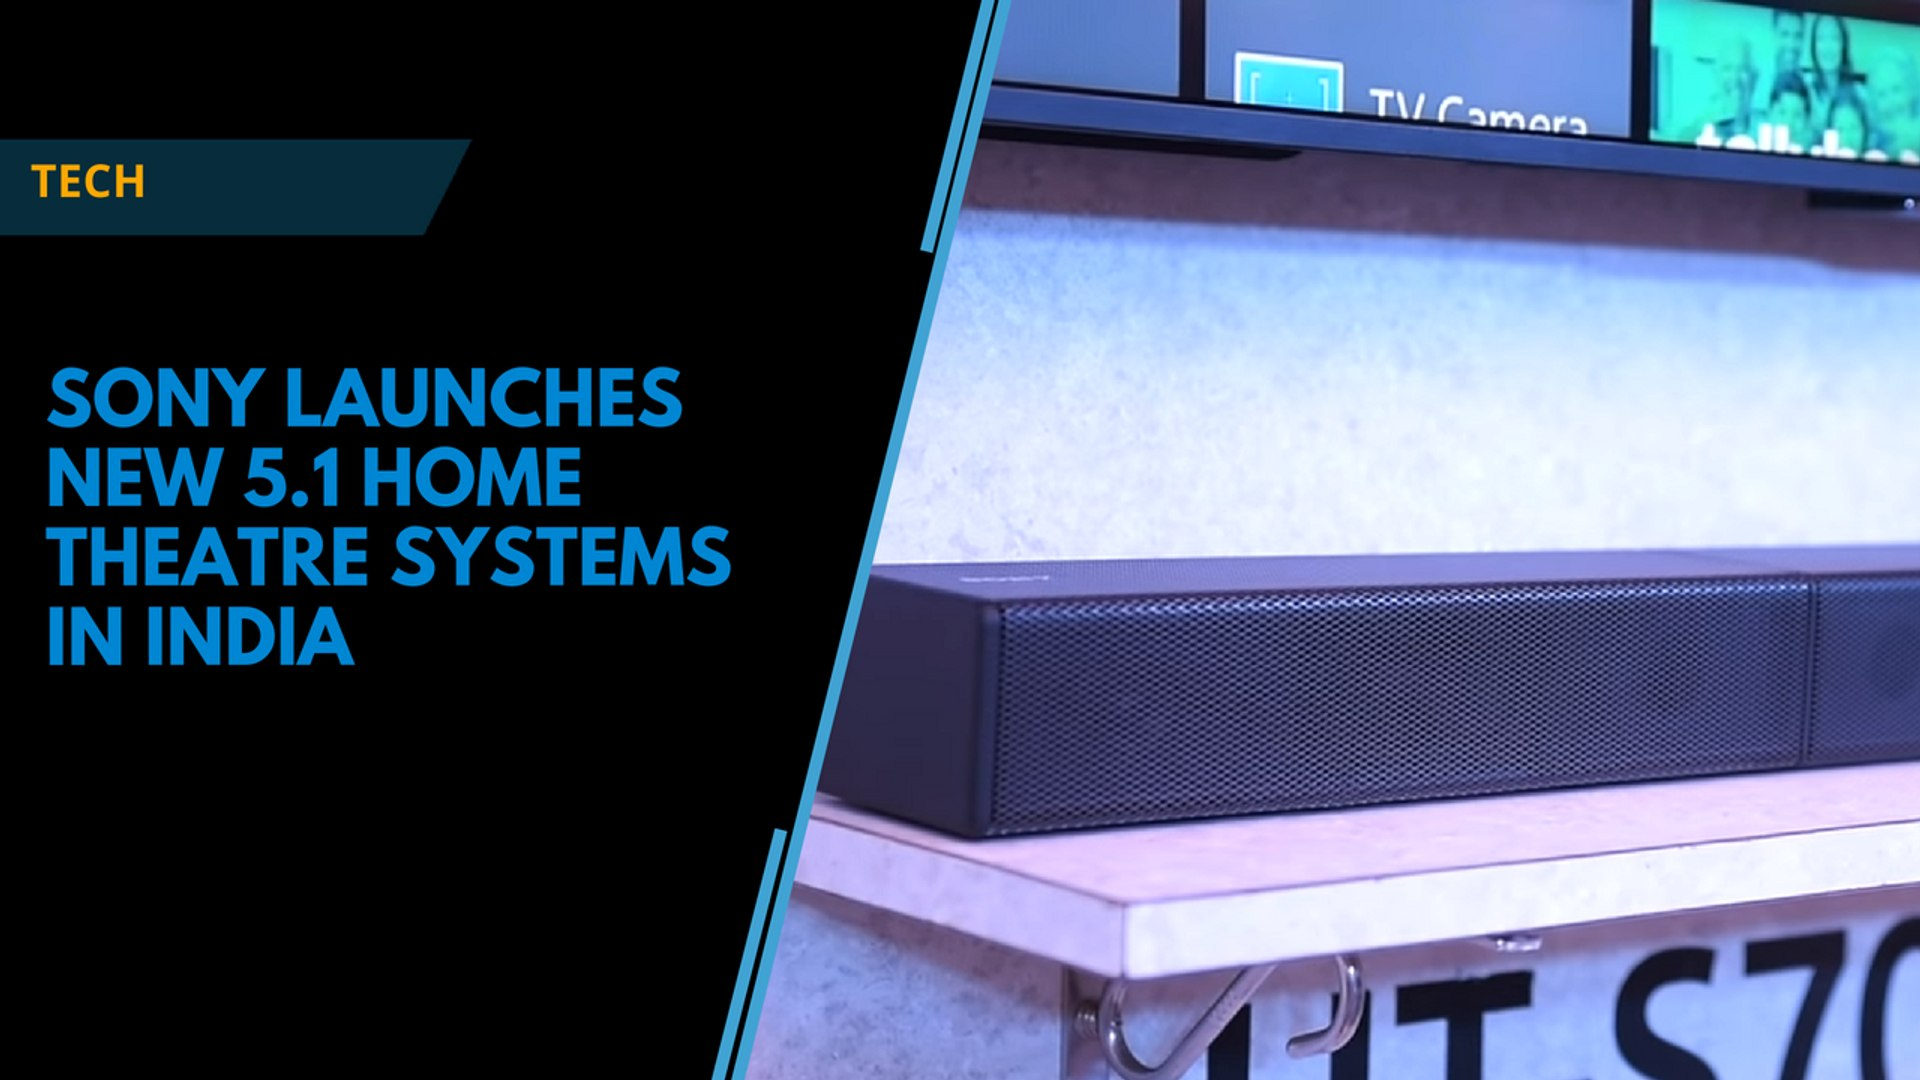 Sony launches new 5.1 home theatre systems in India